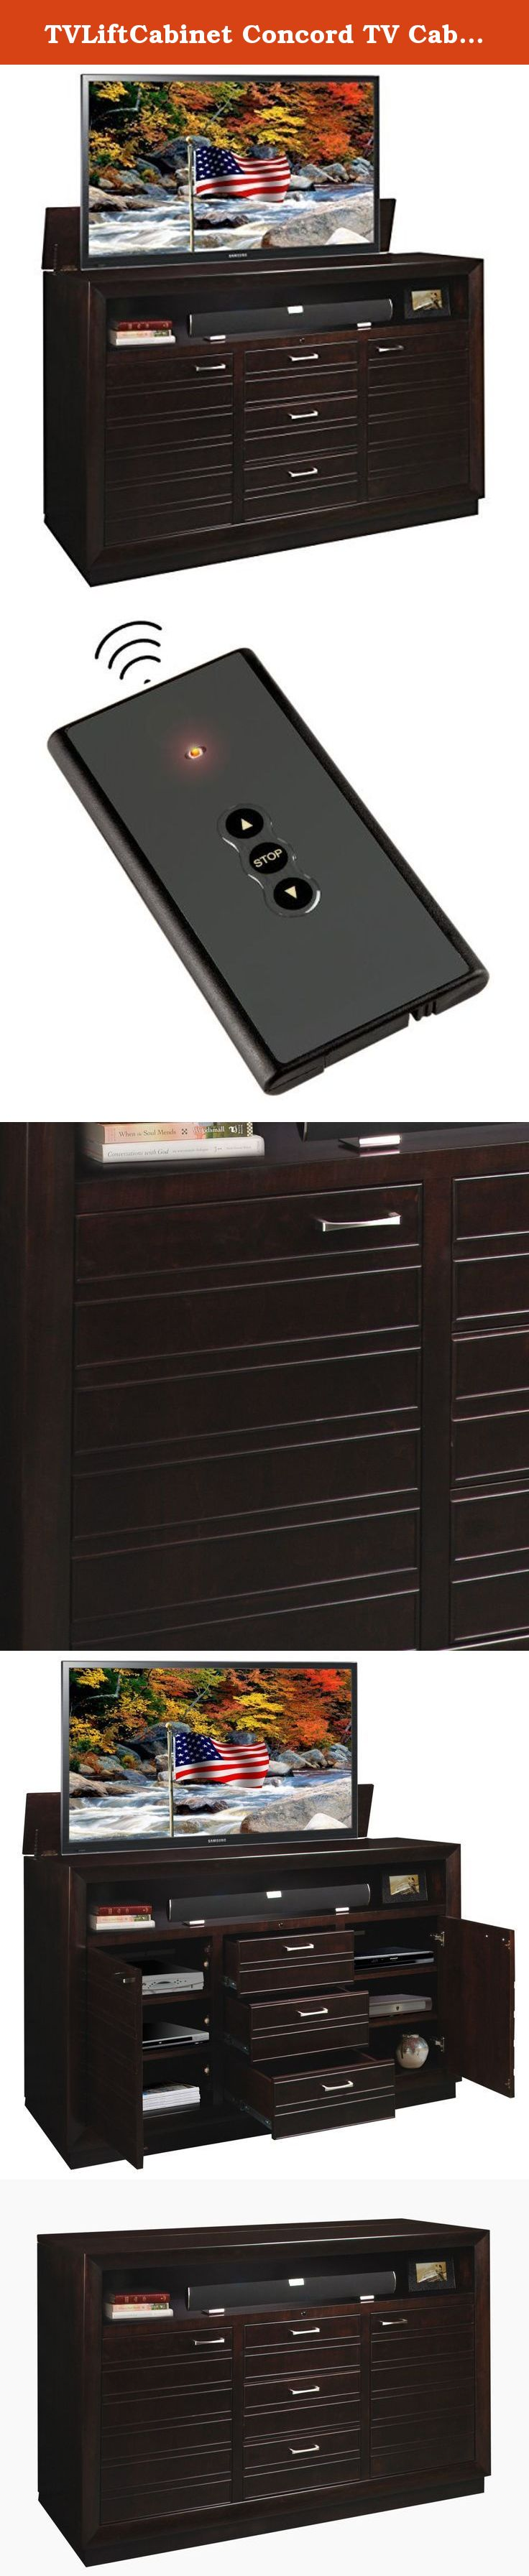 concord tv cabinet xlarge brown the concord xl tv lift cabinet can accommodate screens up to 70 inches and features a modern design with